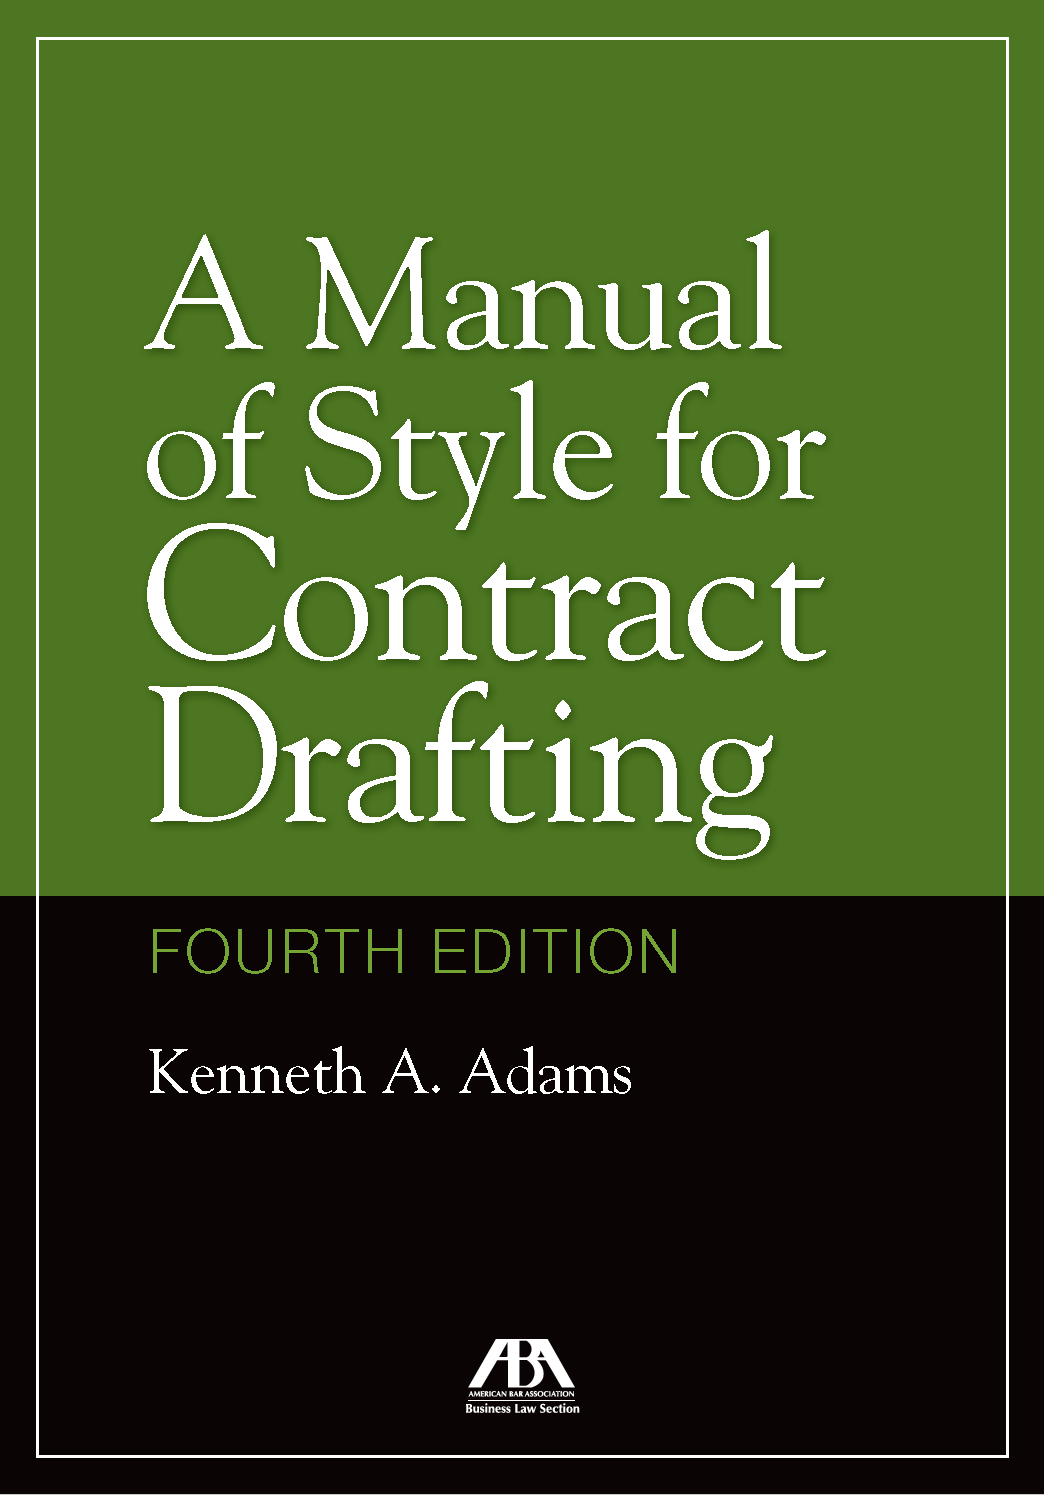 Front cover of A Manual of Style for Contract Drafting